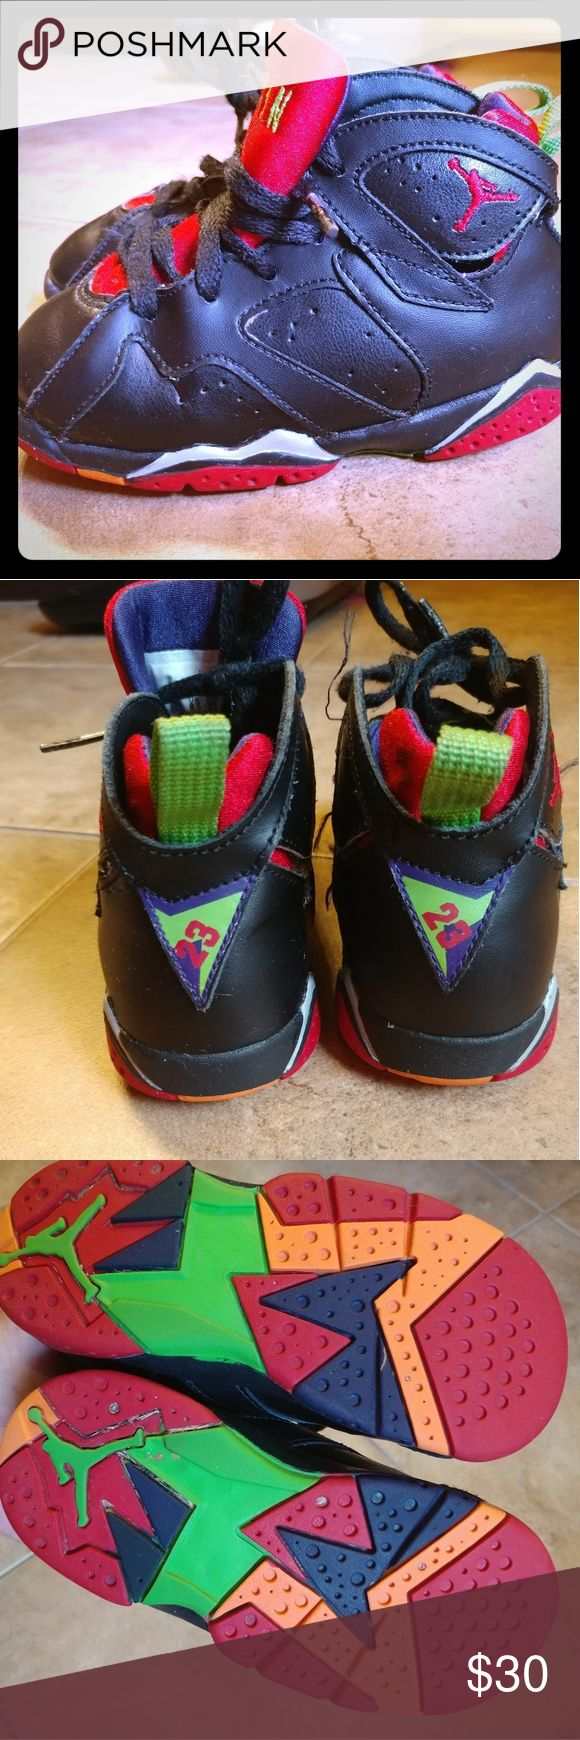 Kids Jordan 7s Marvin the Martian size 9c 👟EUC!!! Jordan Marvin the Martian sneakers they have very minimal wear to them and are in Great shape these were not worn as everyday shoes. Jordan Shoes Sneakers